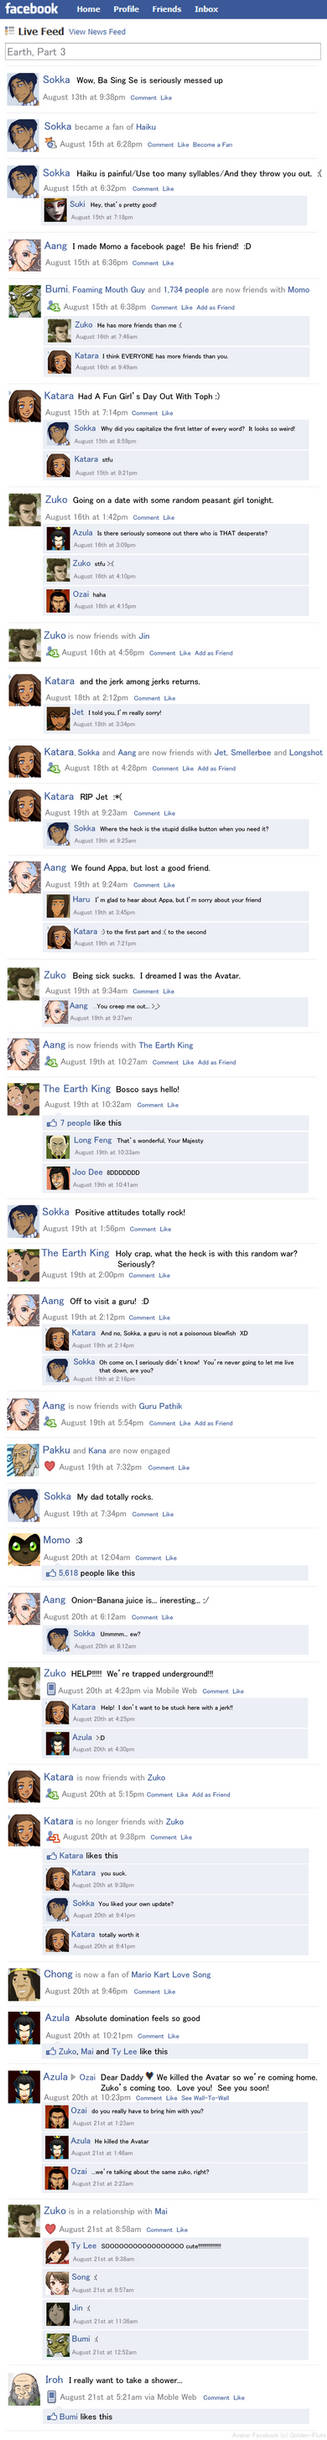 Avatar Facebook Earth Part 3